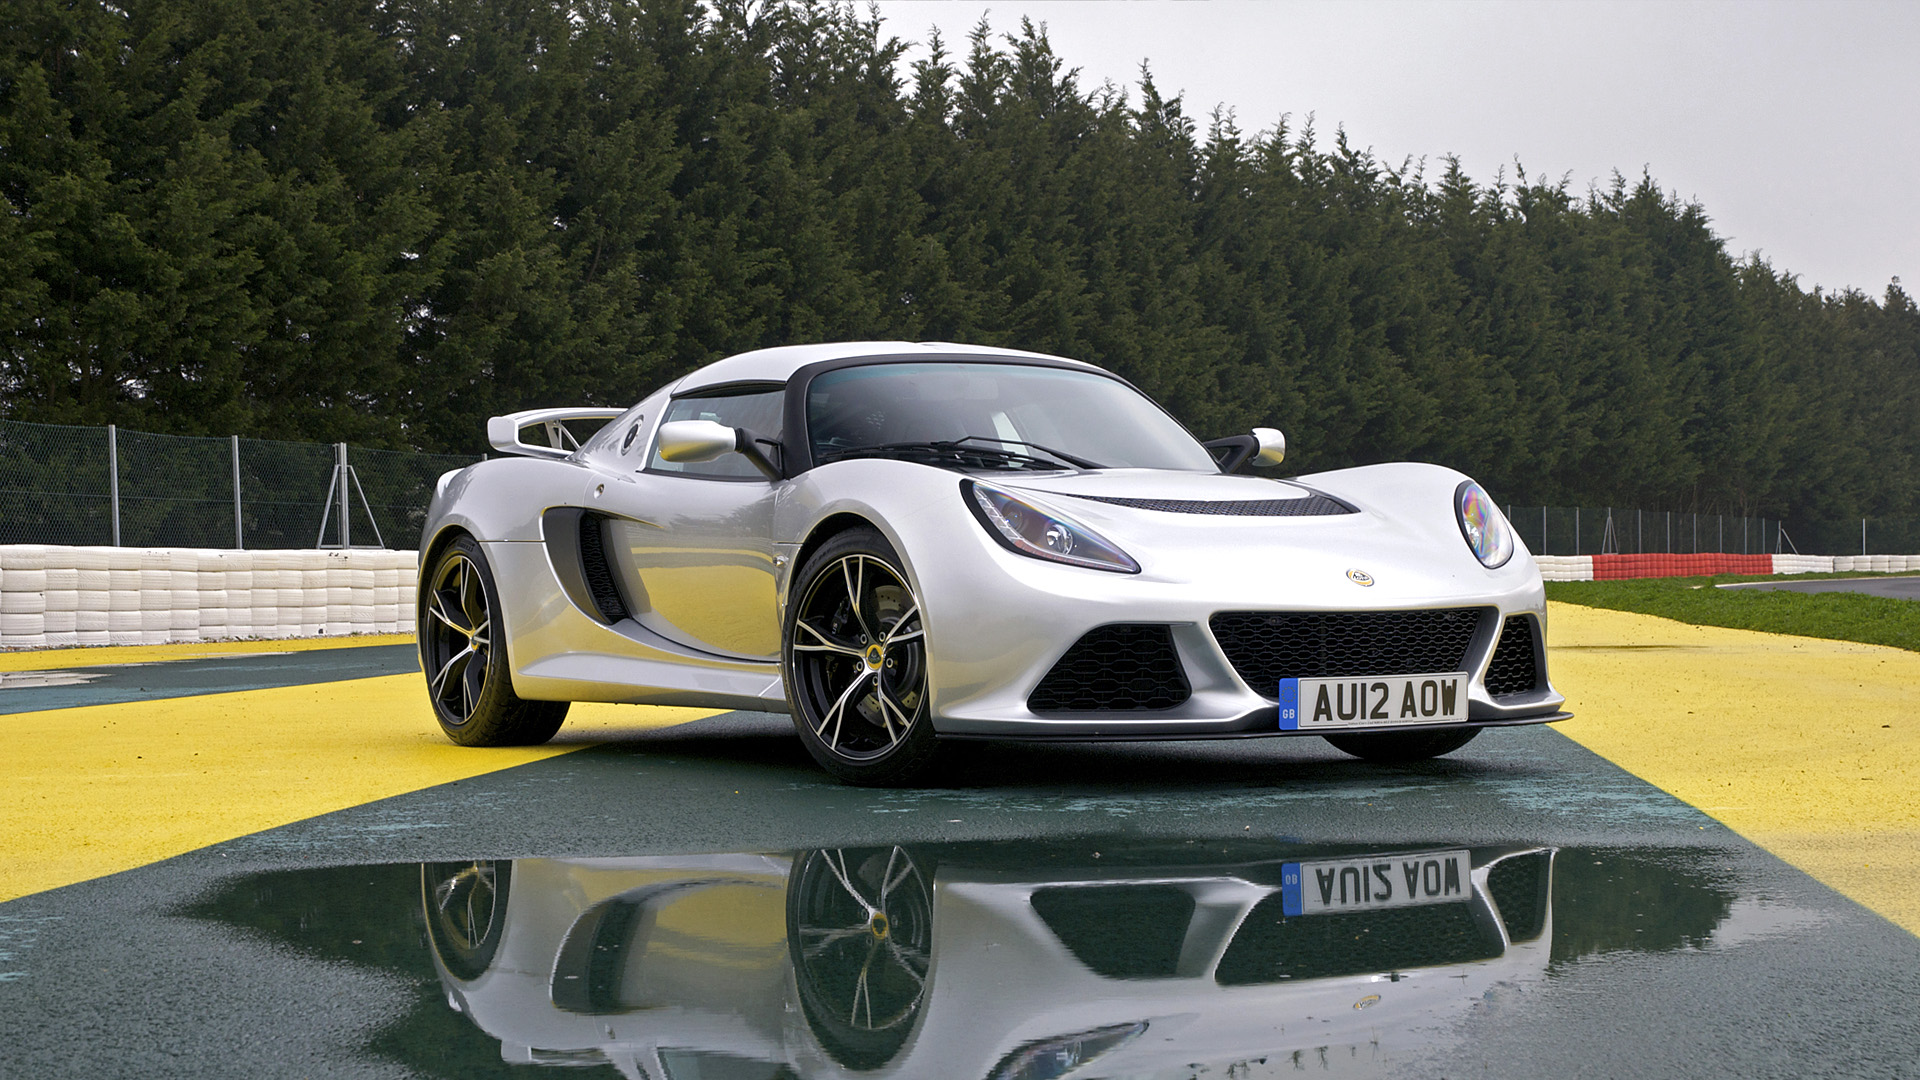 Awesome Merveilleux Lotus Exige Wallpaper 45045